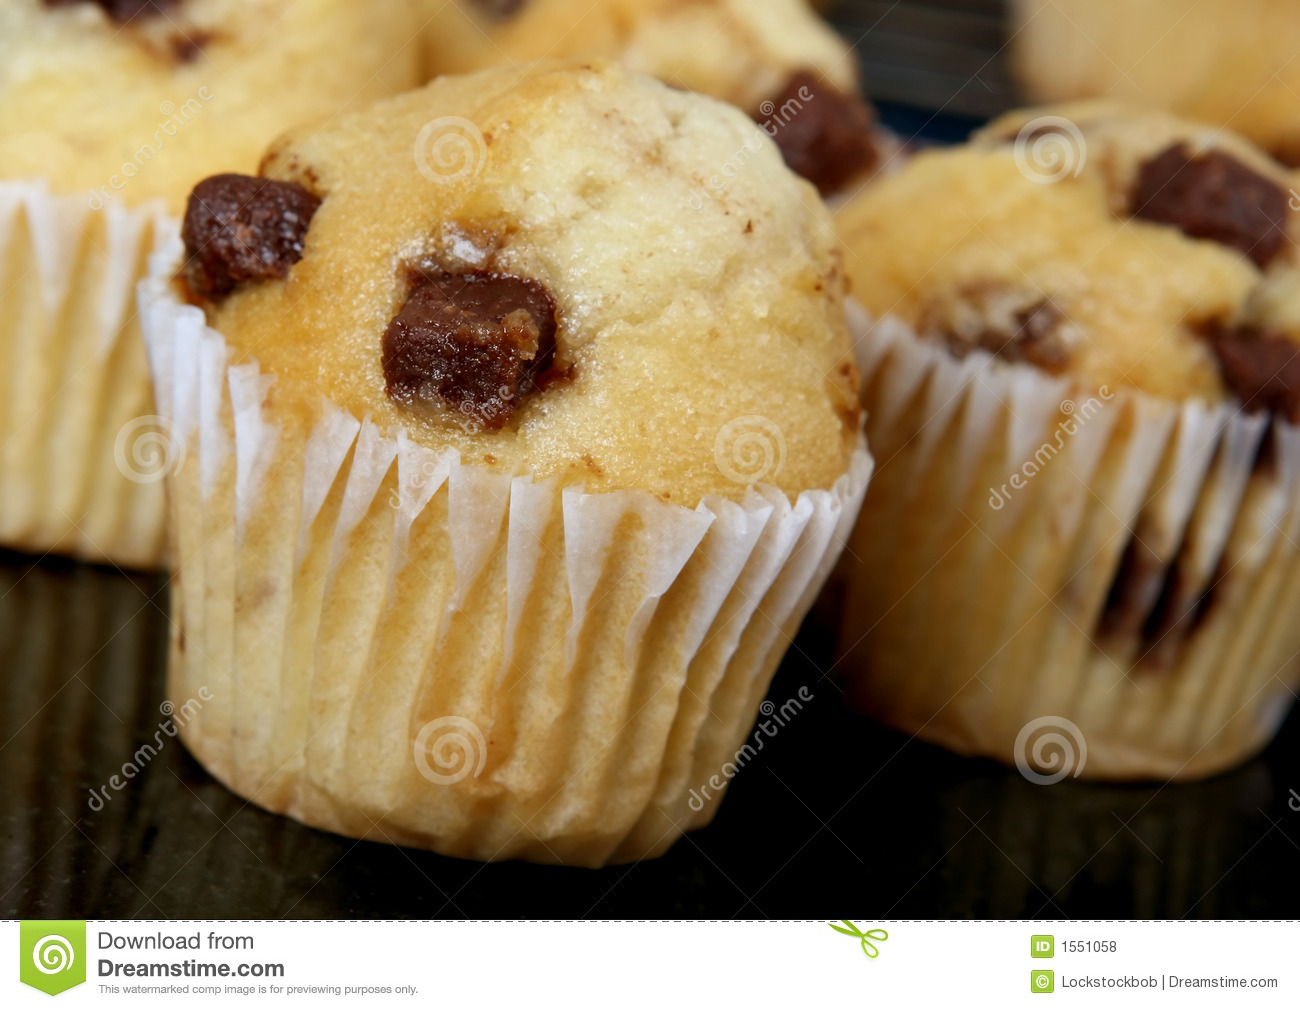 Golden Chocolate Chip Muffins Baked In The Kitchen Stock